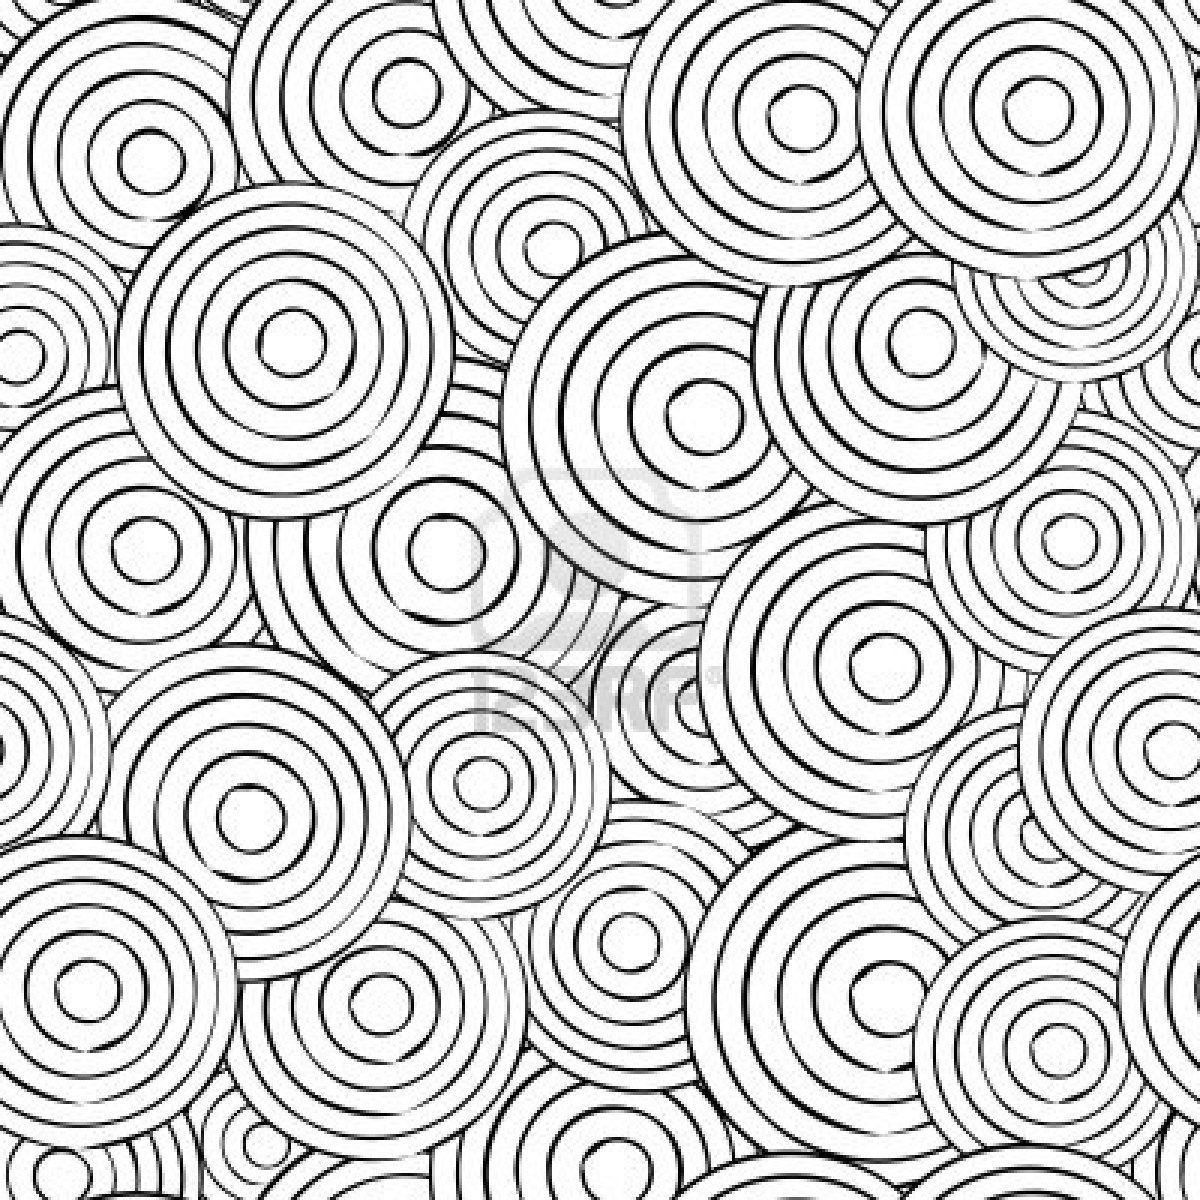 general pattern coloring pages for adults printable - Coloring In Patterns